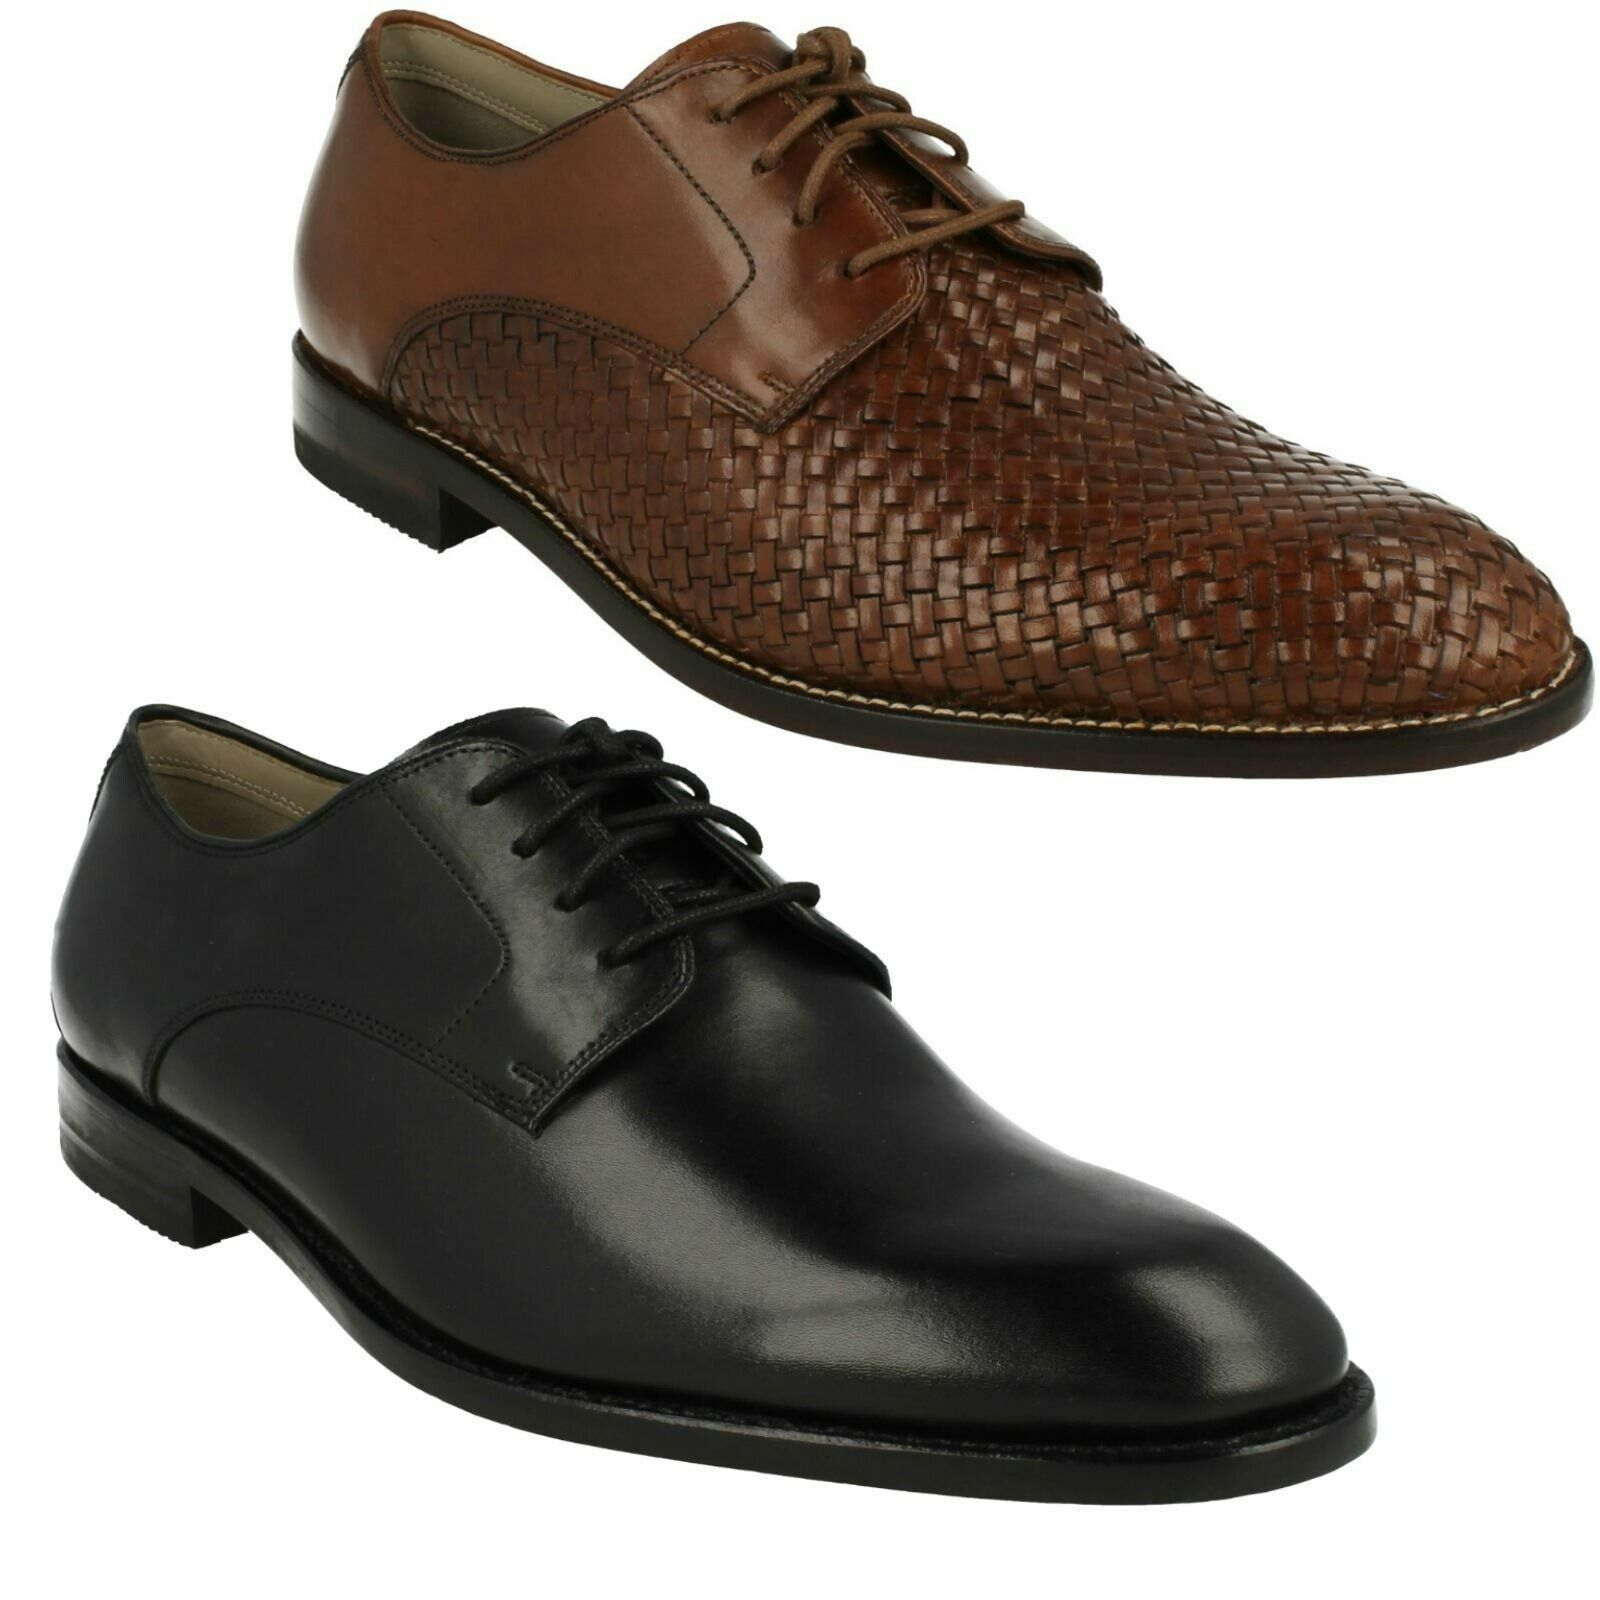 TWINLEY LACE CLARKS MENS DRESS FORMAL LACE UP SMART WOVEN LEATHER DERBY SHOES